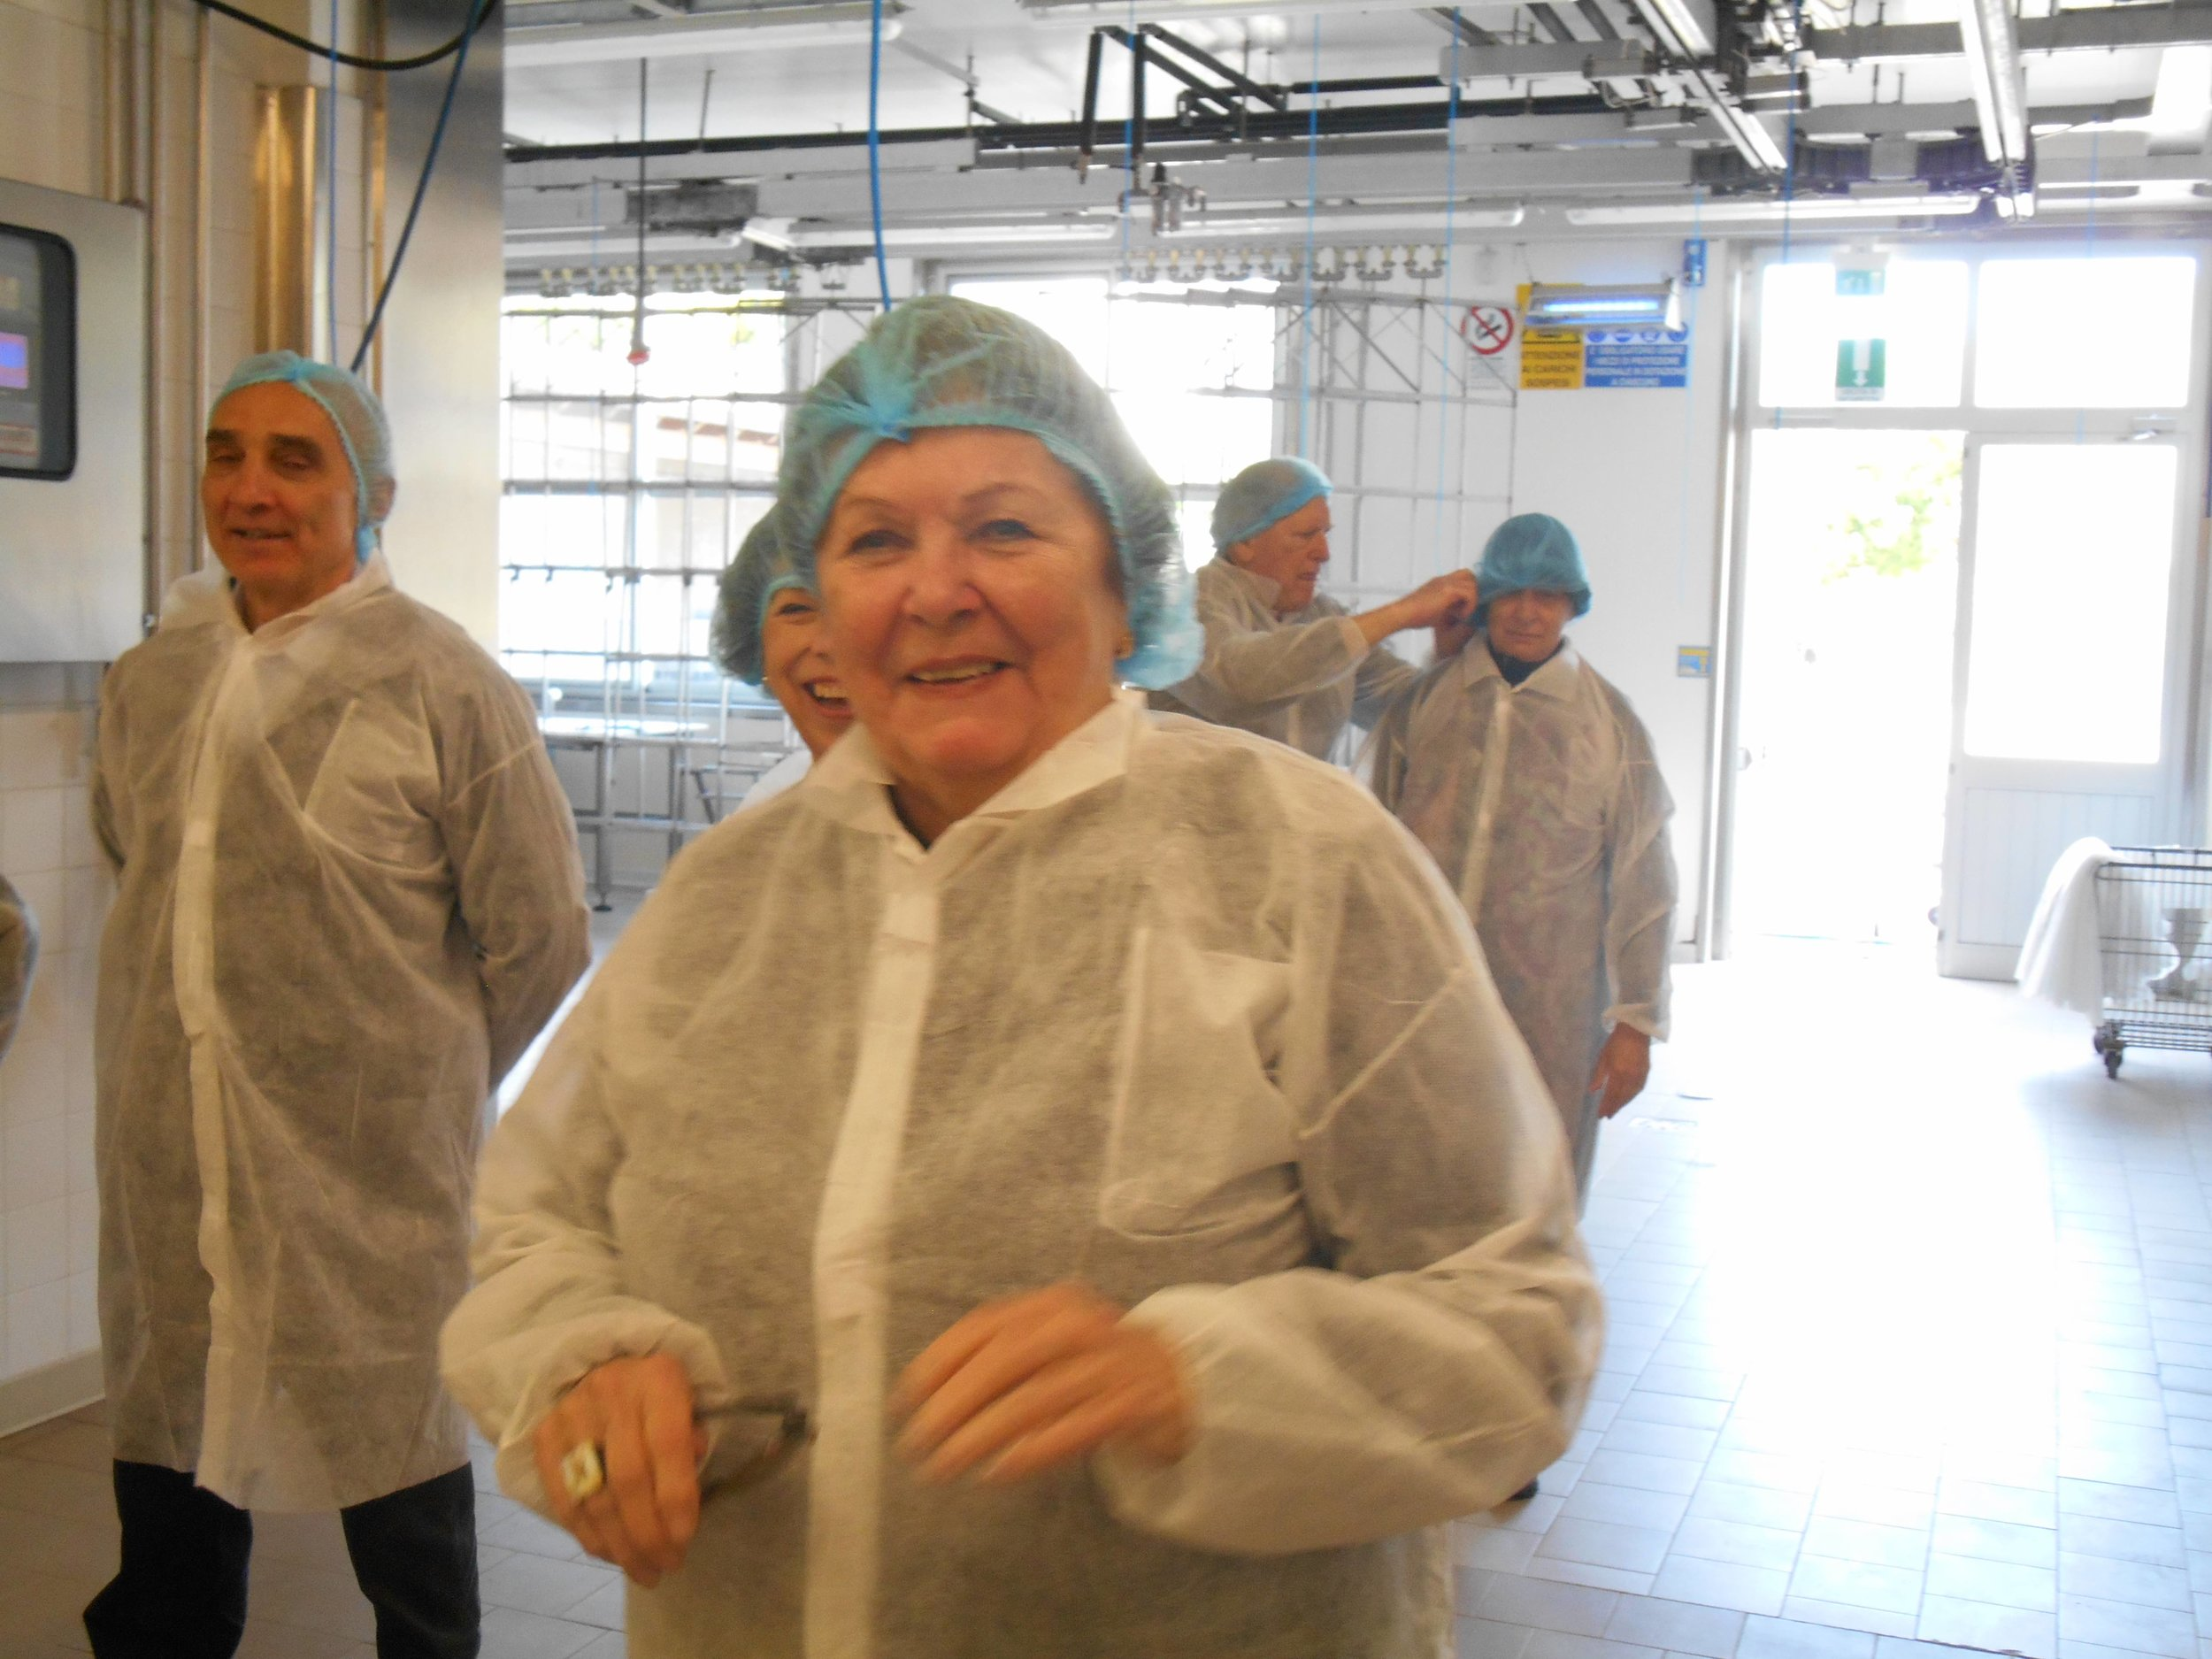 Dressed for the occasion up close and personal to the...cheese and ham and balsamic vinegar tours and more